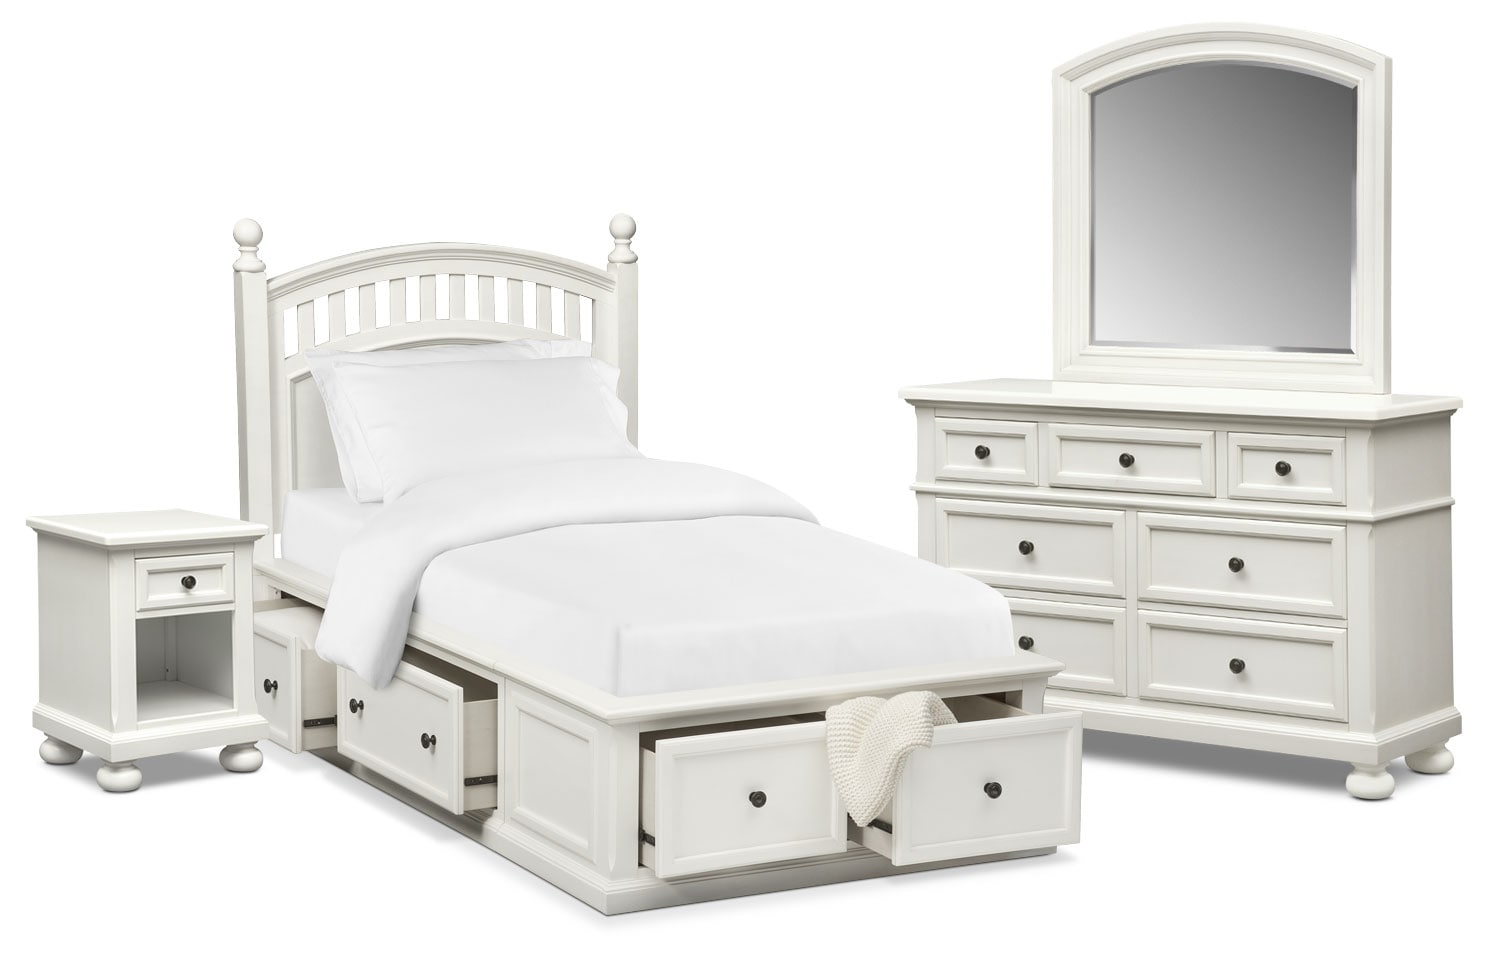 Kids Furniture - Hanover Youth 6-Piece Poster Bedroom Set with Storage, Nightstand, Dresser and Mirror